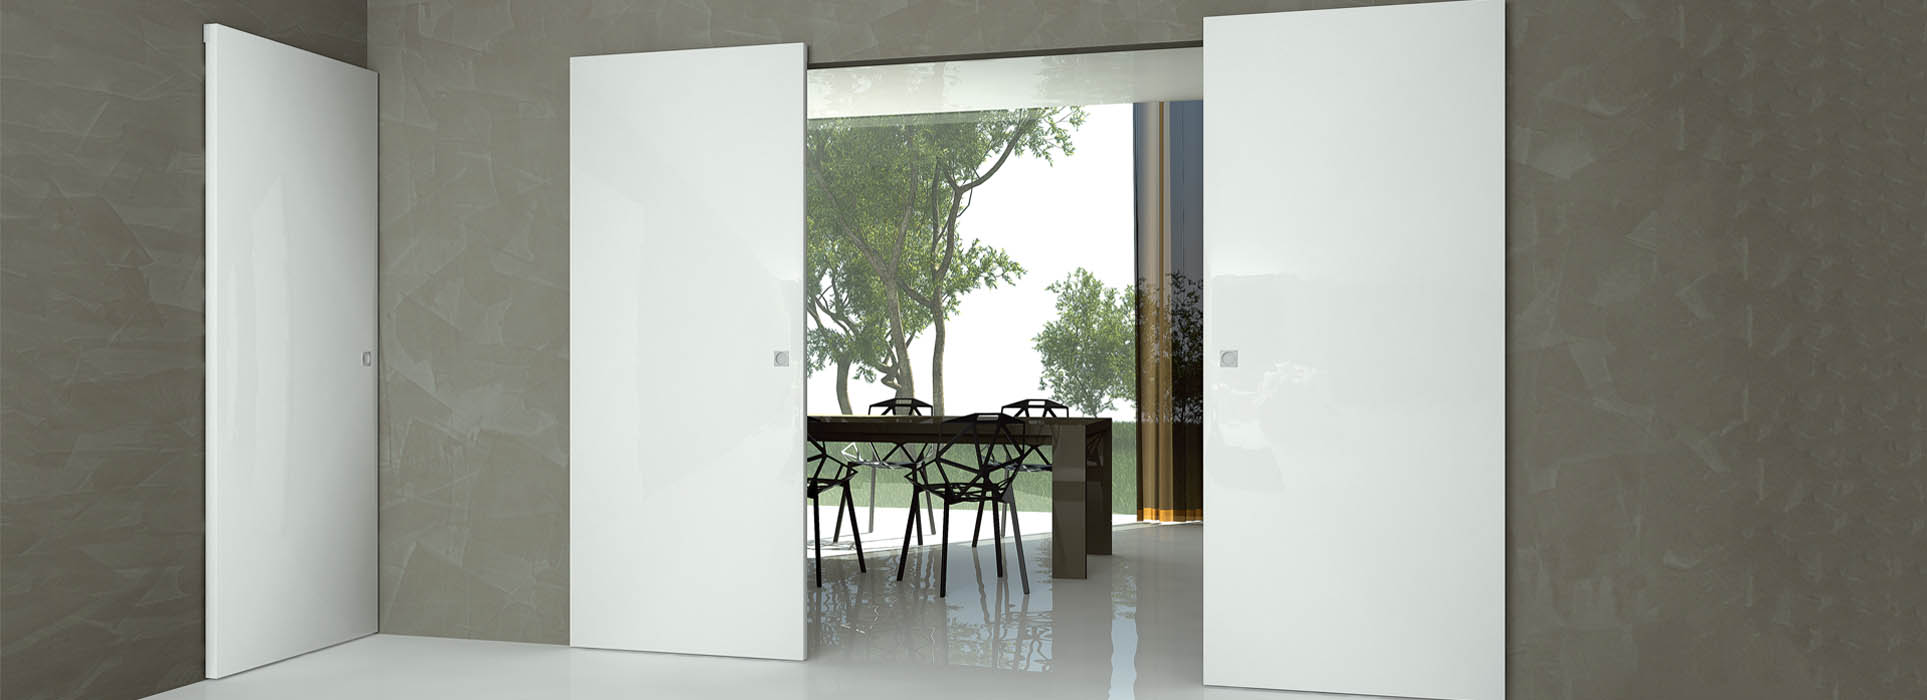 Infissi in pvc legno alluminio porte blindate a vicenza for Infissi pvc leroy merlin